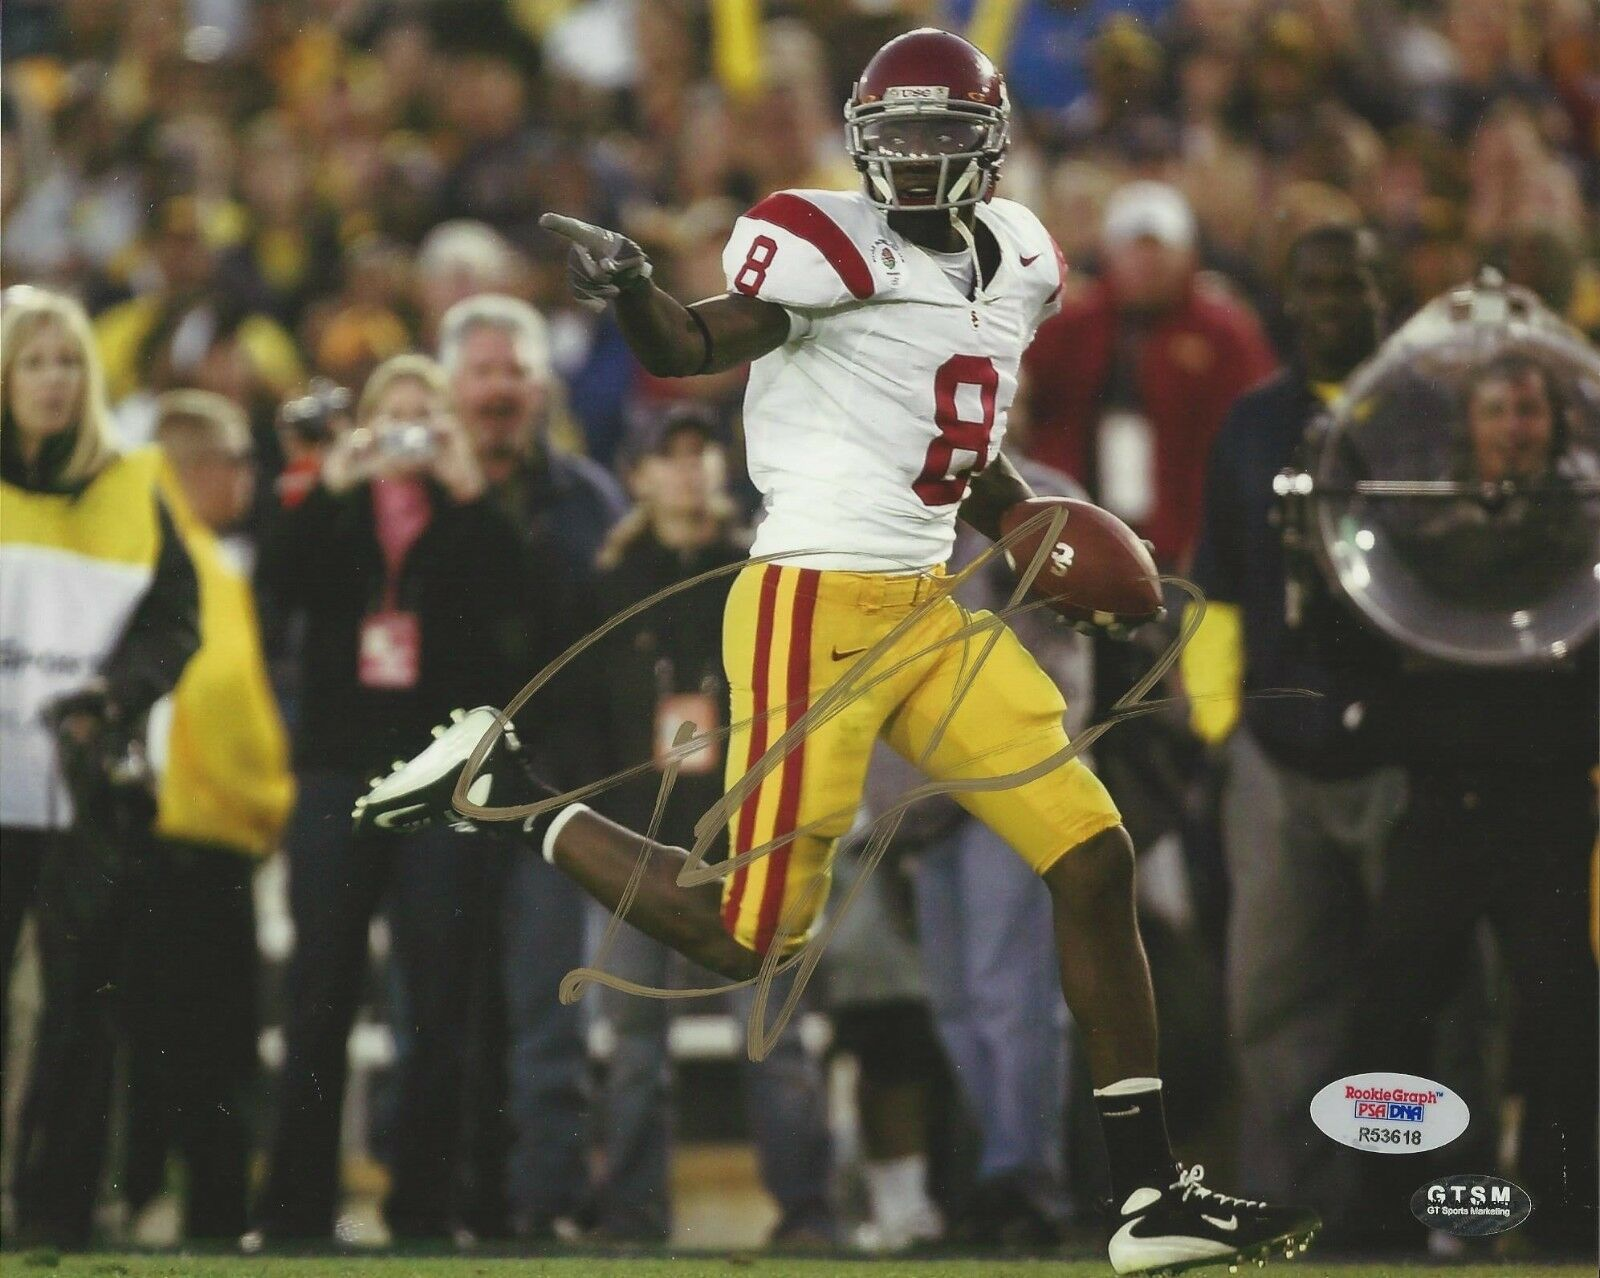 Dwayne Jarrett USC Trojans signed 8x10 photo PSA/DNA # R53618